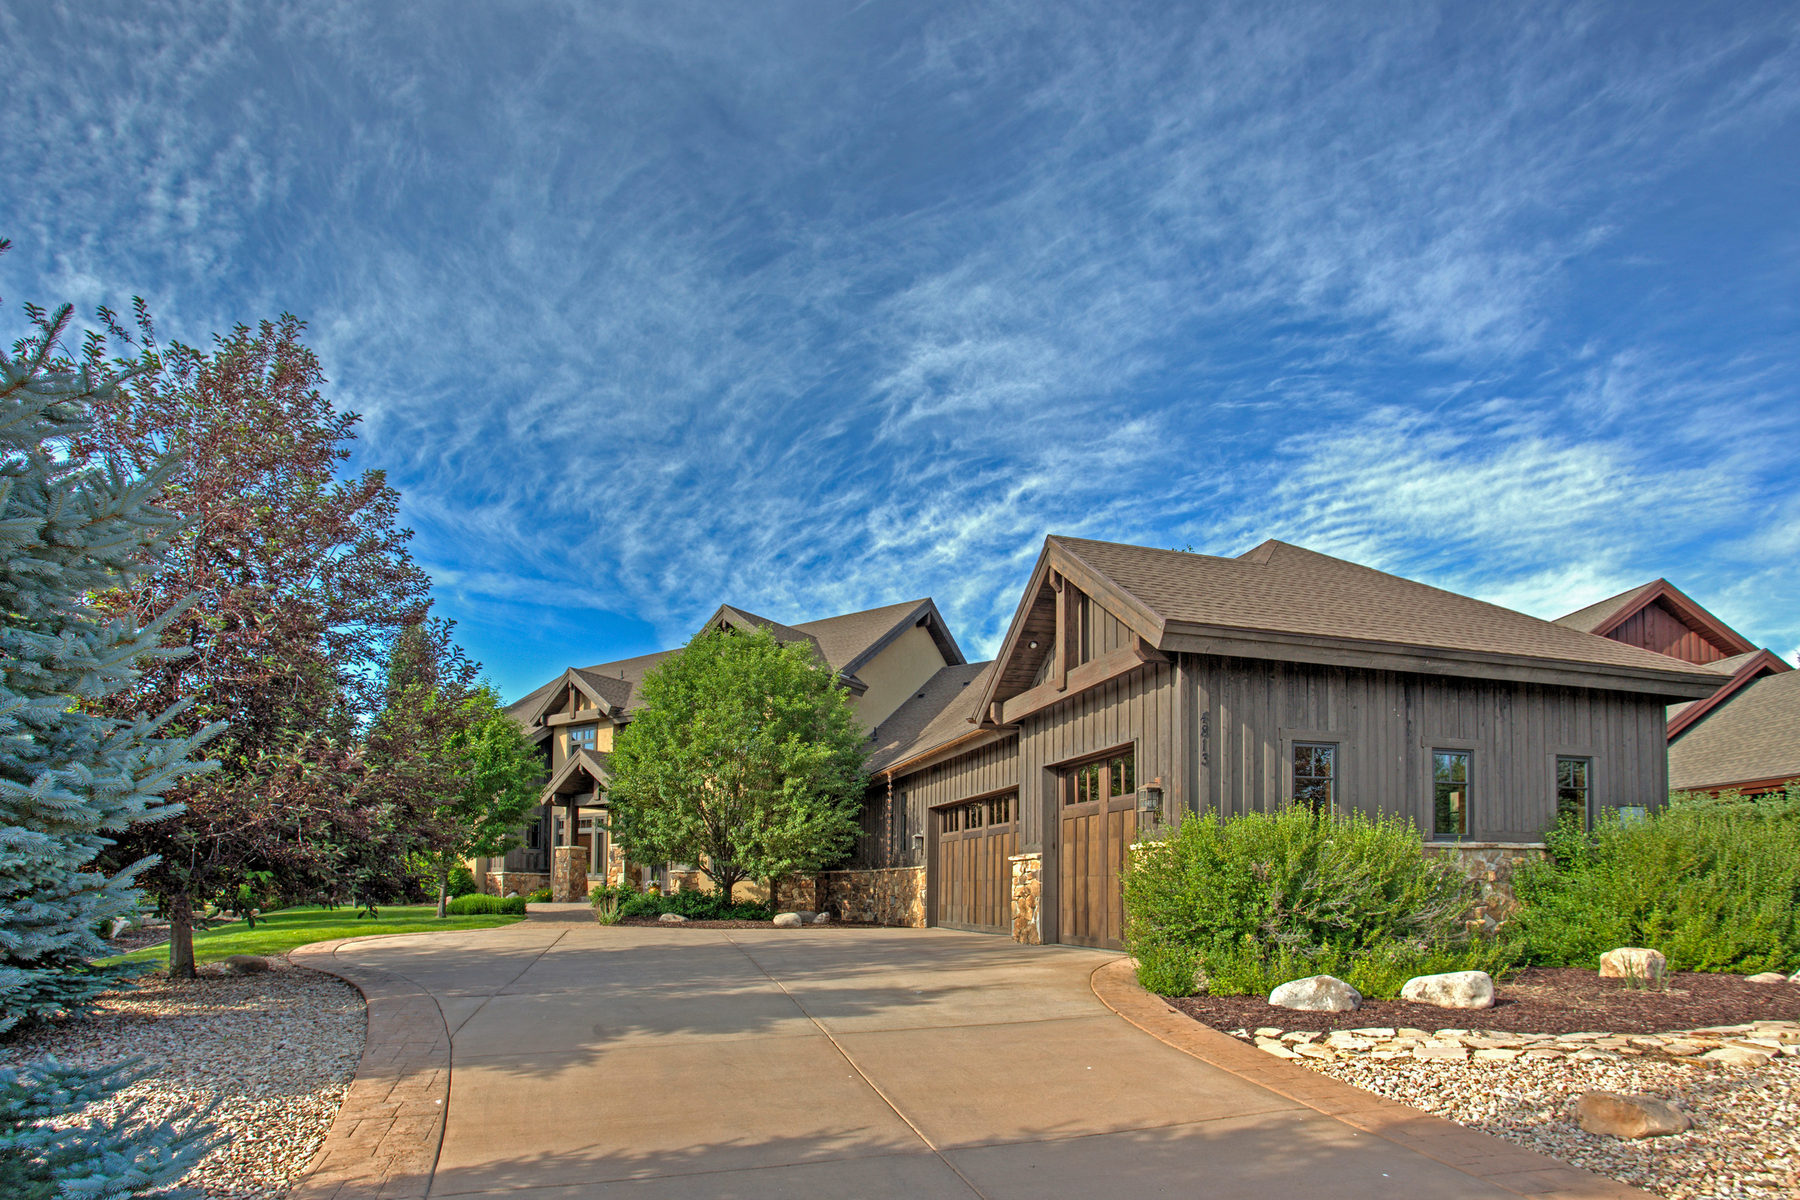 Single Family Home for Sale at Beautifully Appointed Willow Creek Estates Home with Amazing Views 4813 Last Stand Dr Park City, Utah 84098 United States